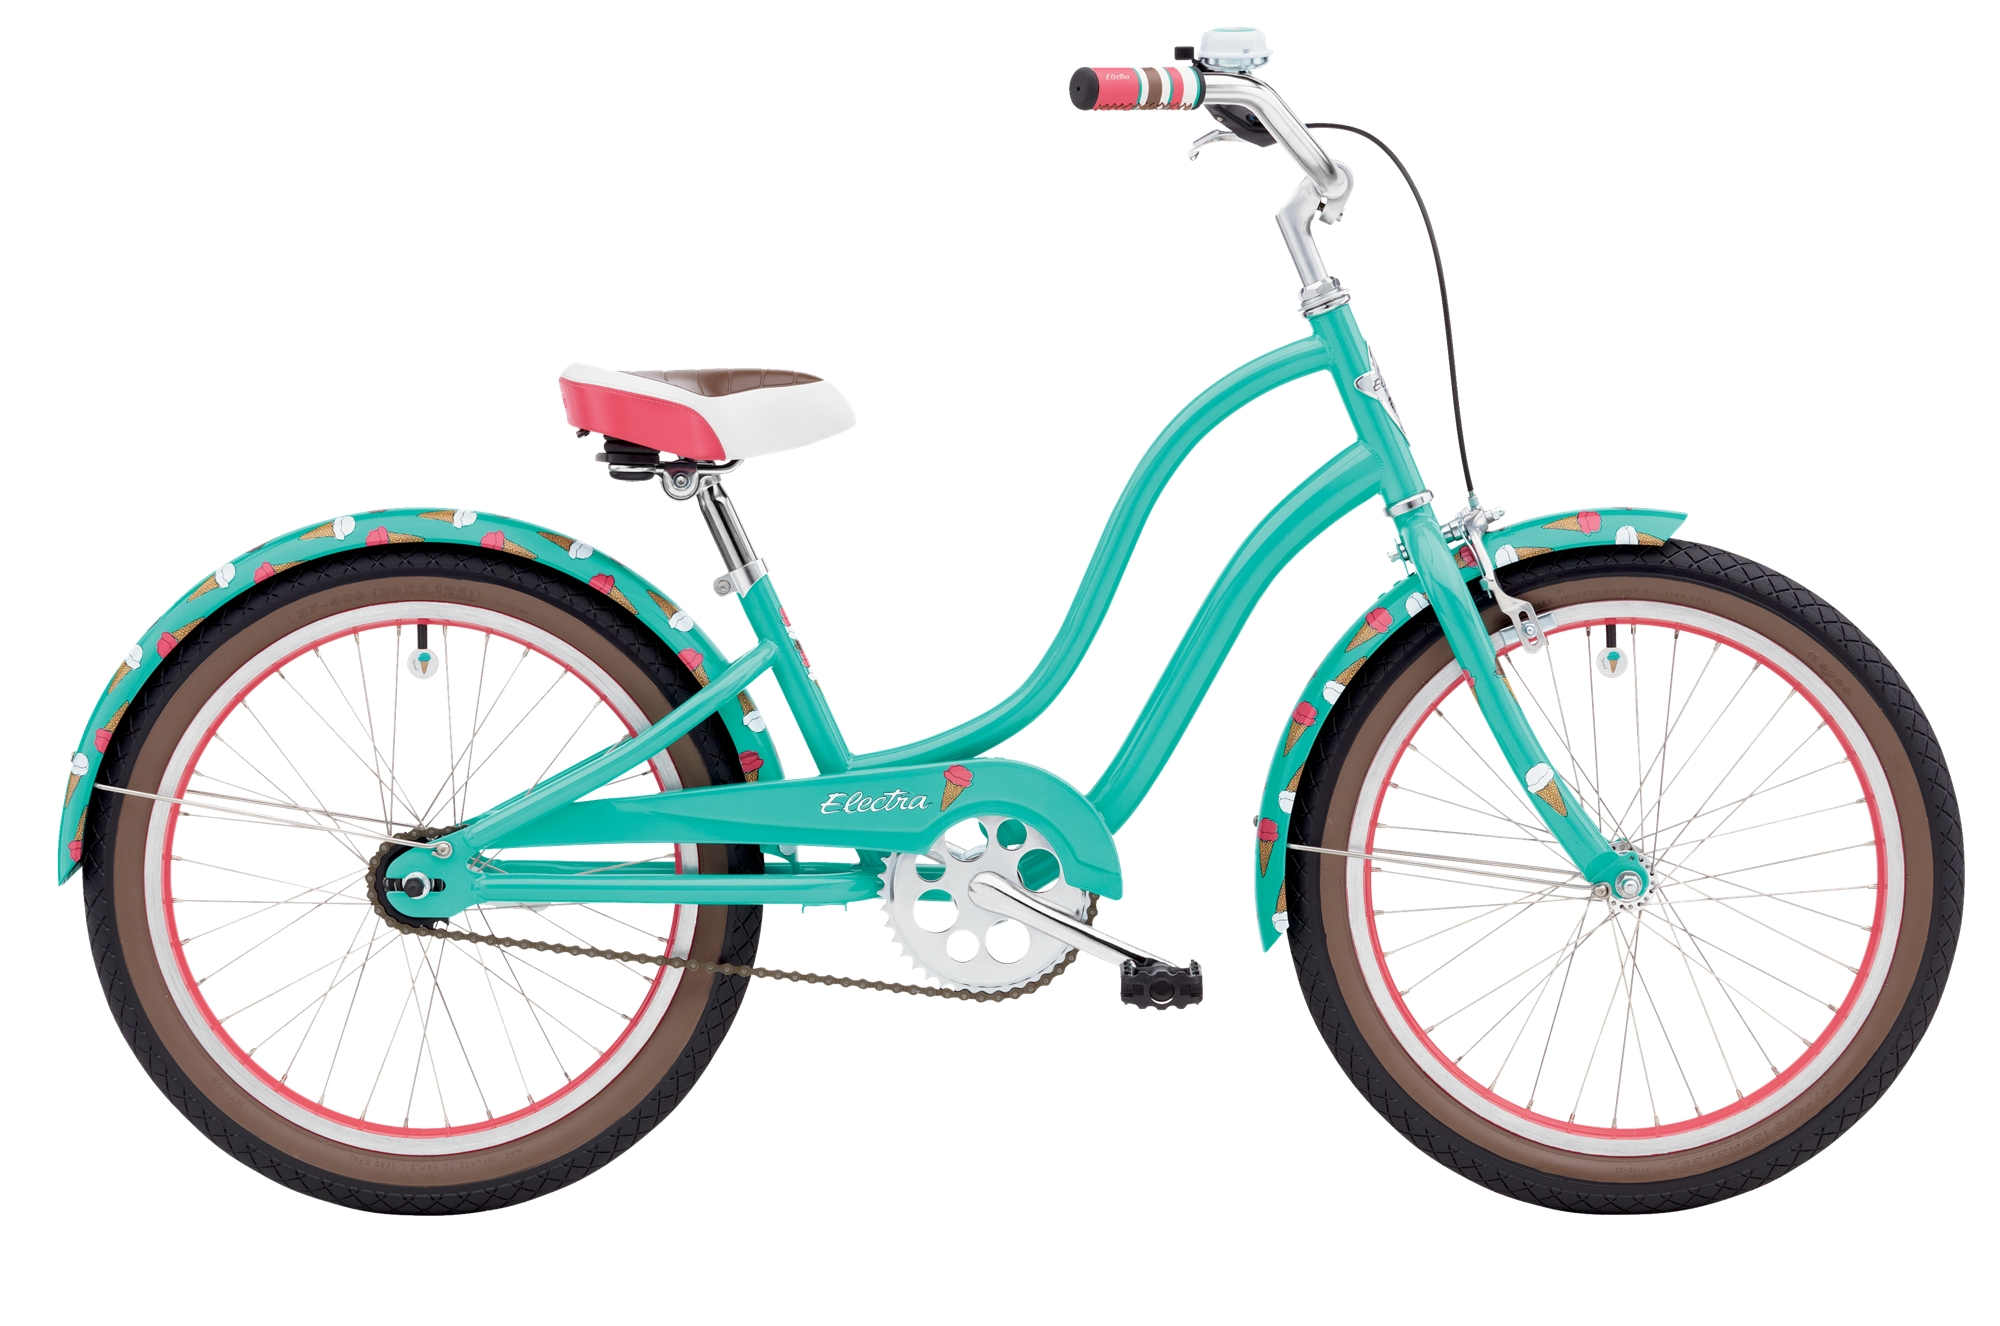 Electra SWEET RIDE 3I 20IN Girls GN - Teal M